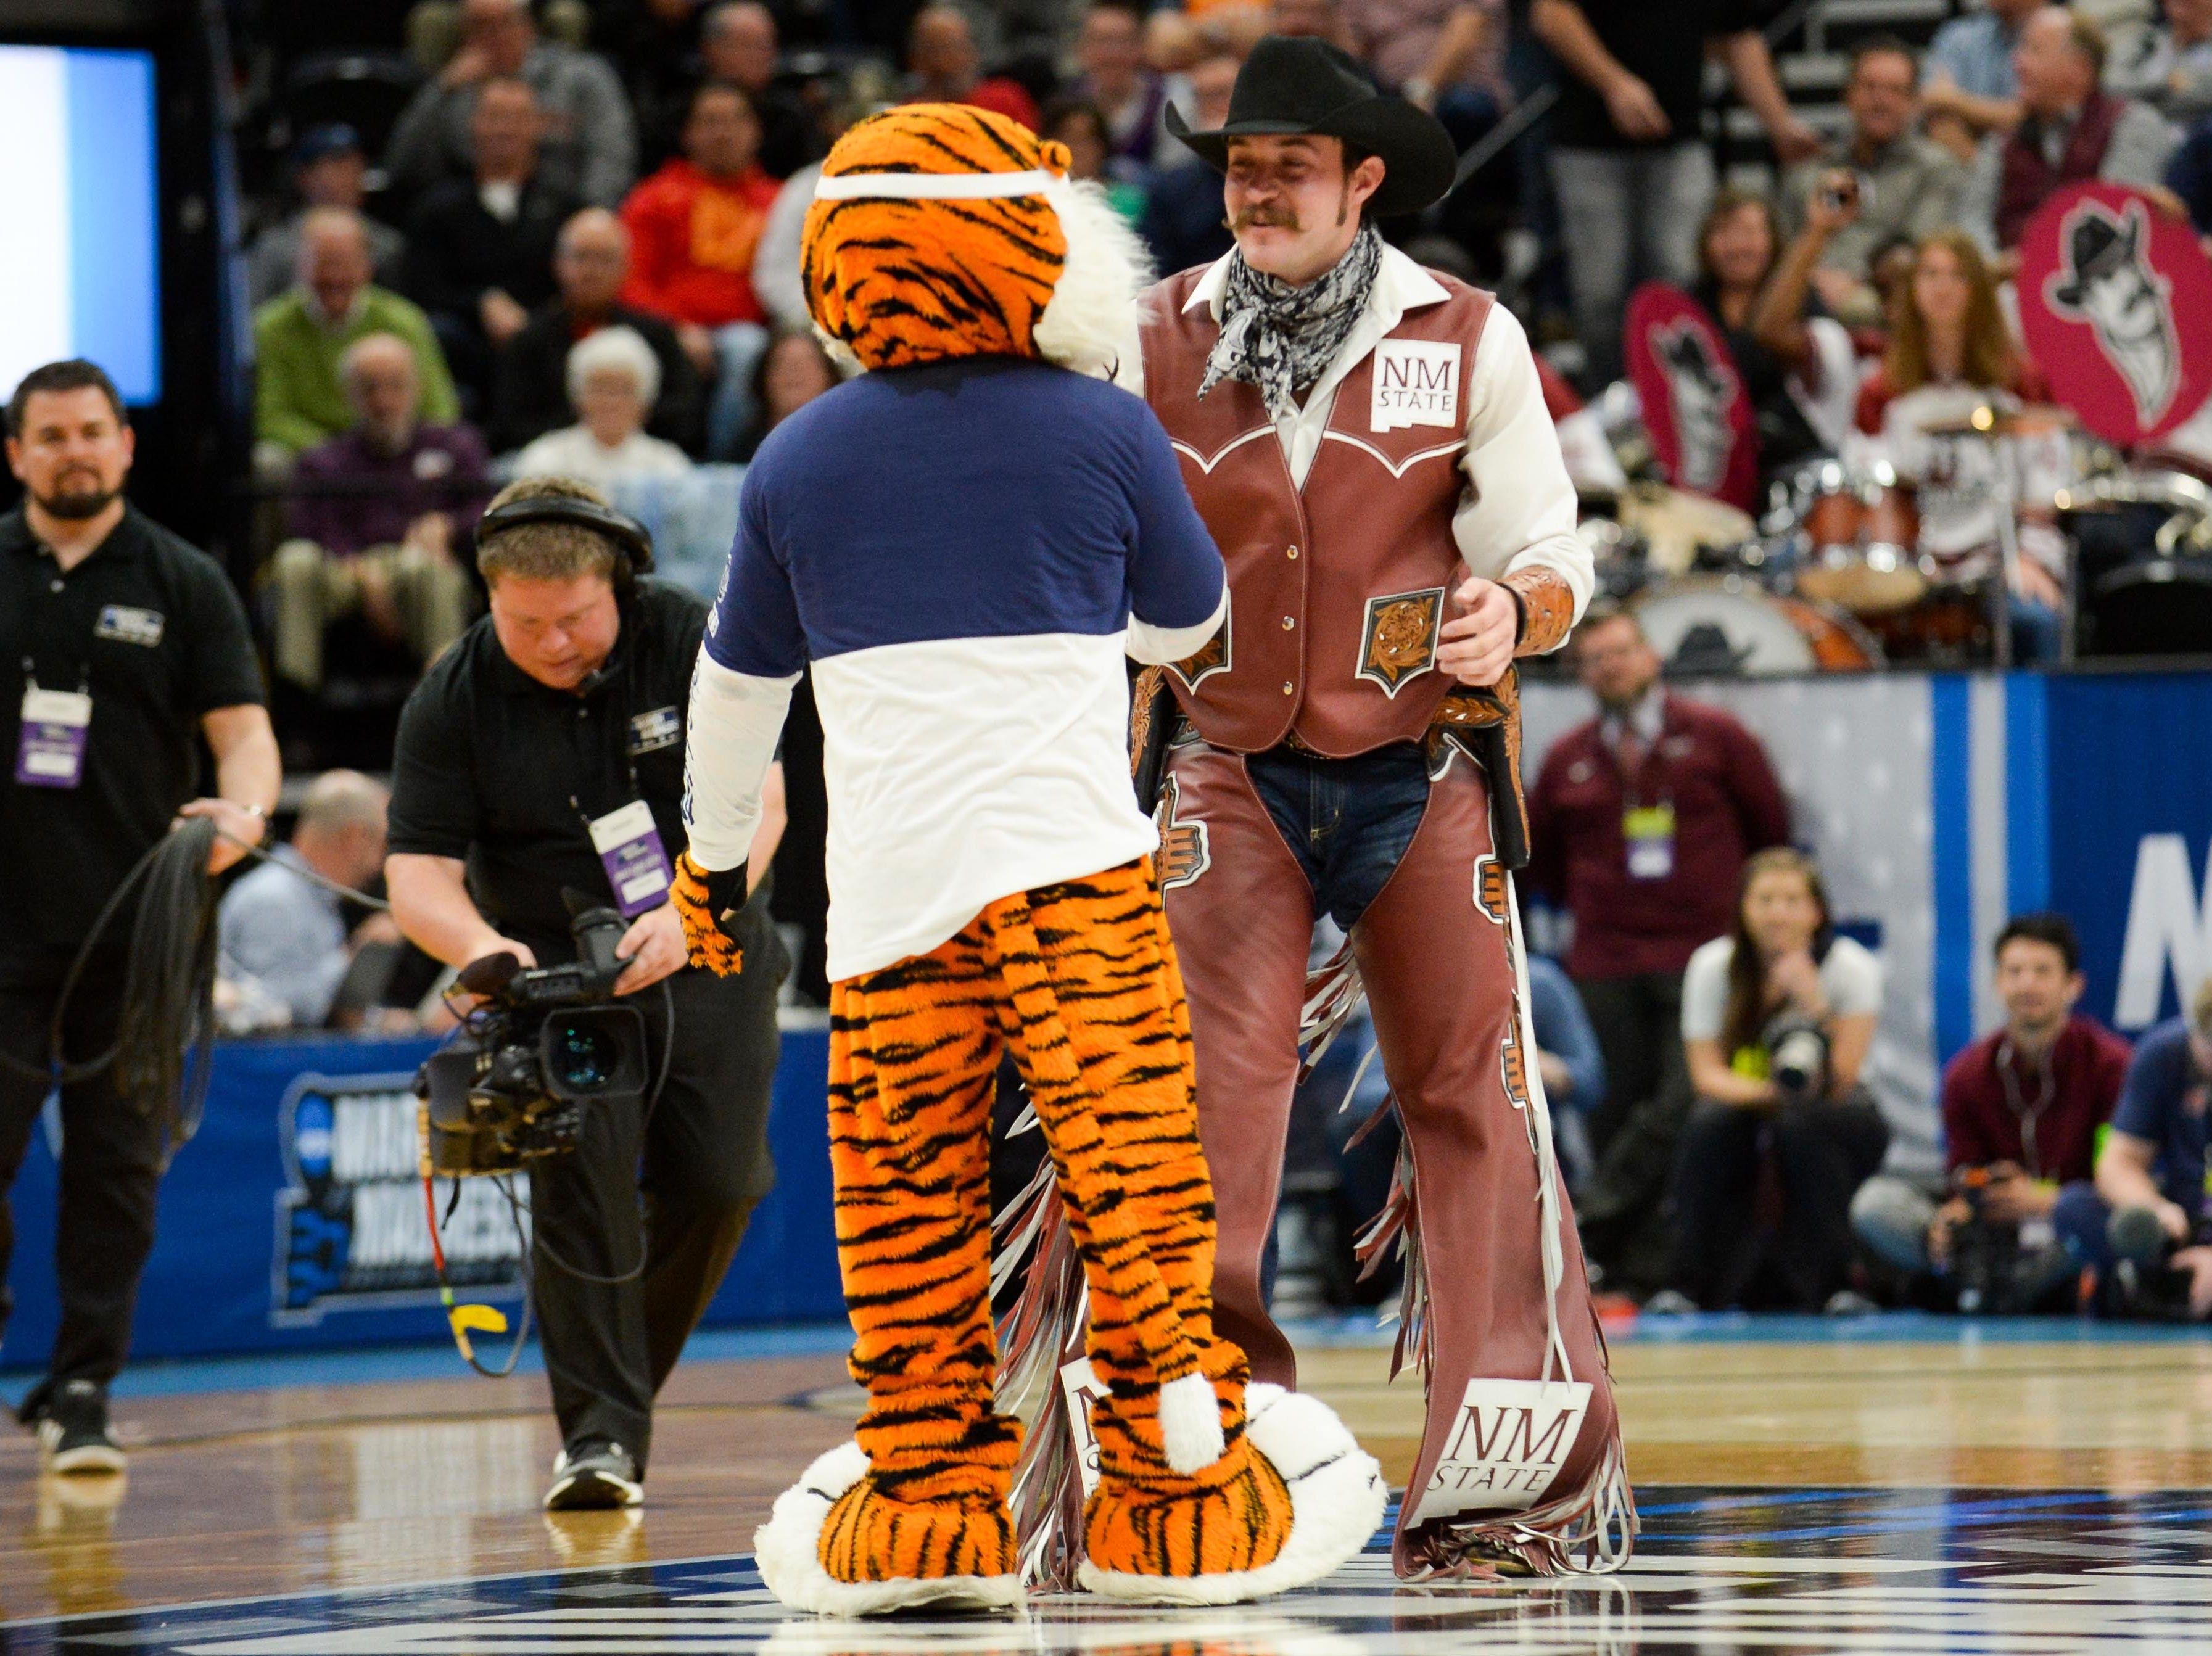 Mar 21, 2019; Salt Lake City, UT, USA; The mascots for Auburn Tigers and New Mexico State Aggies meet on the court during the first half in the first round of the 2019 NCAA Tournament at Vivint Smart Home Arena. Mandatory Credit: Gary A. Vasquez-USA TODAY Sports